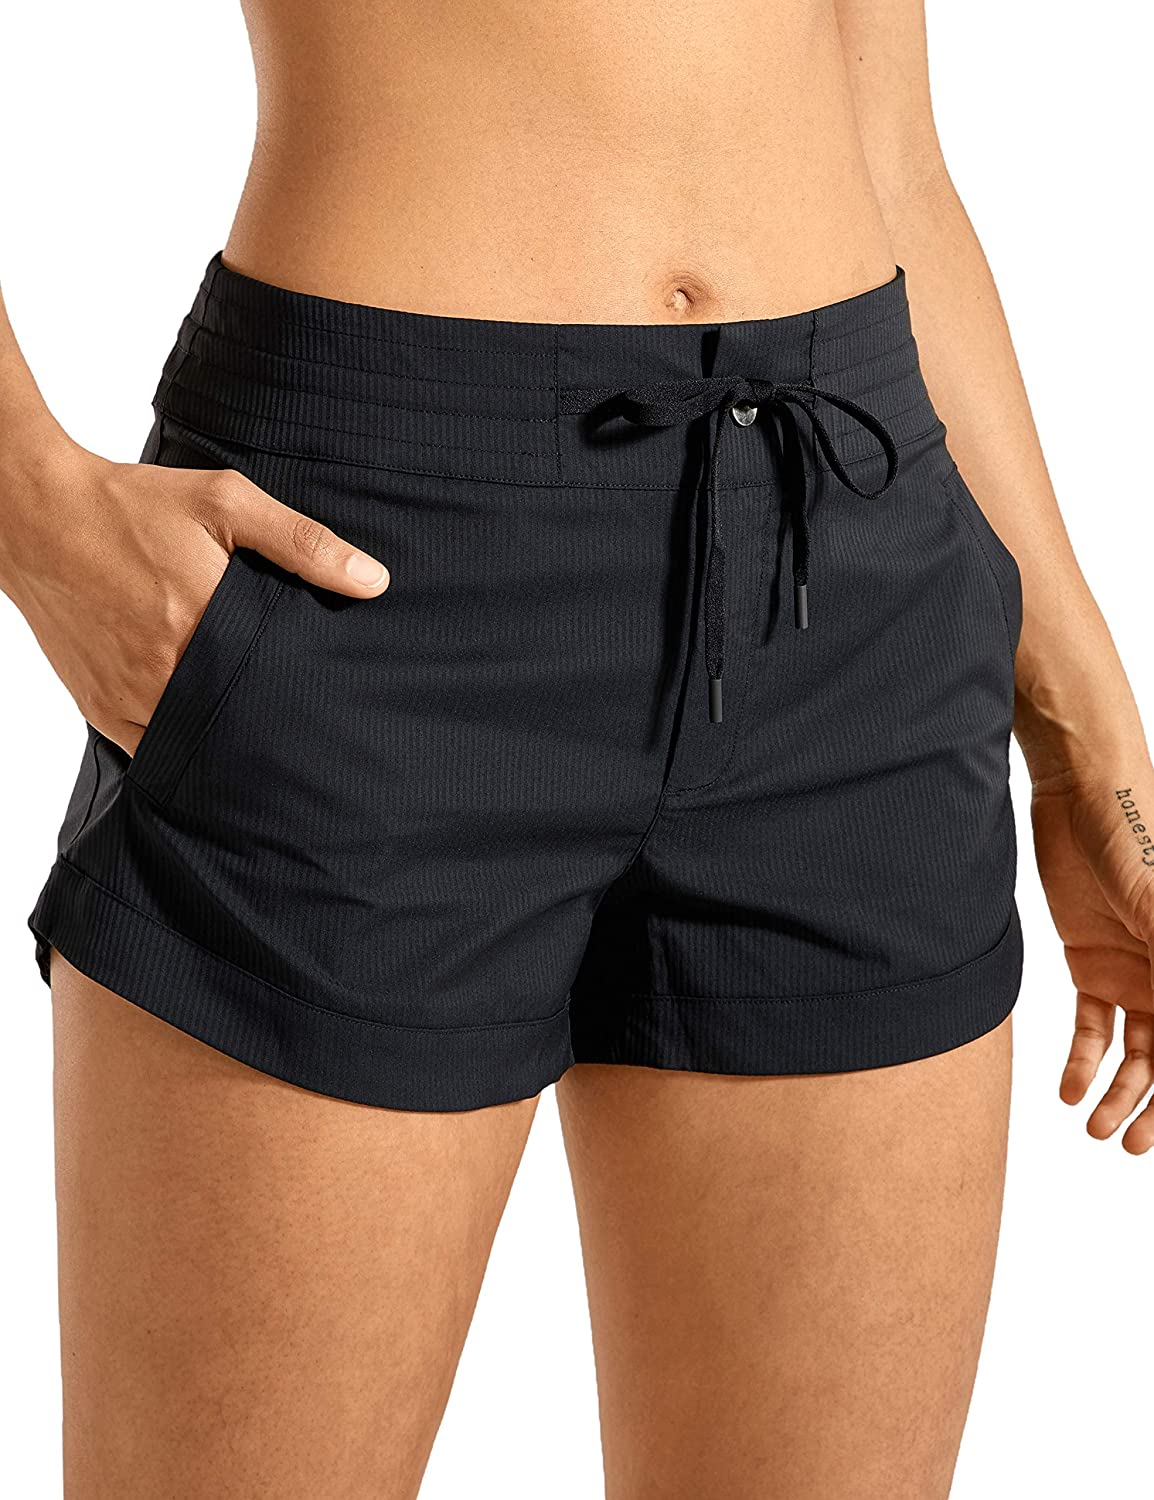 CRZ YOGA Women Go to Studio Casual Shorts Woven Stripe Relaxed Fit Shorts-3 inches